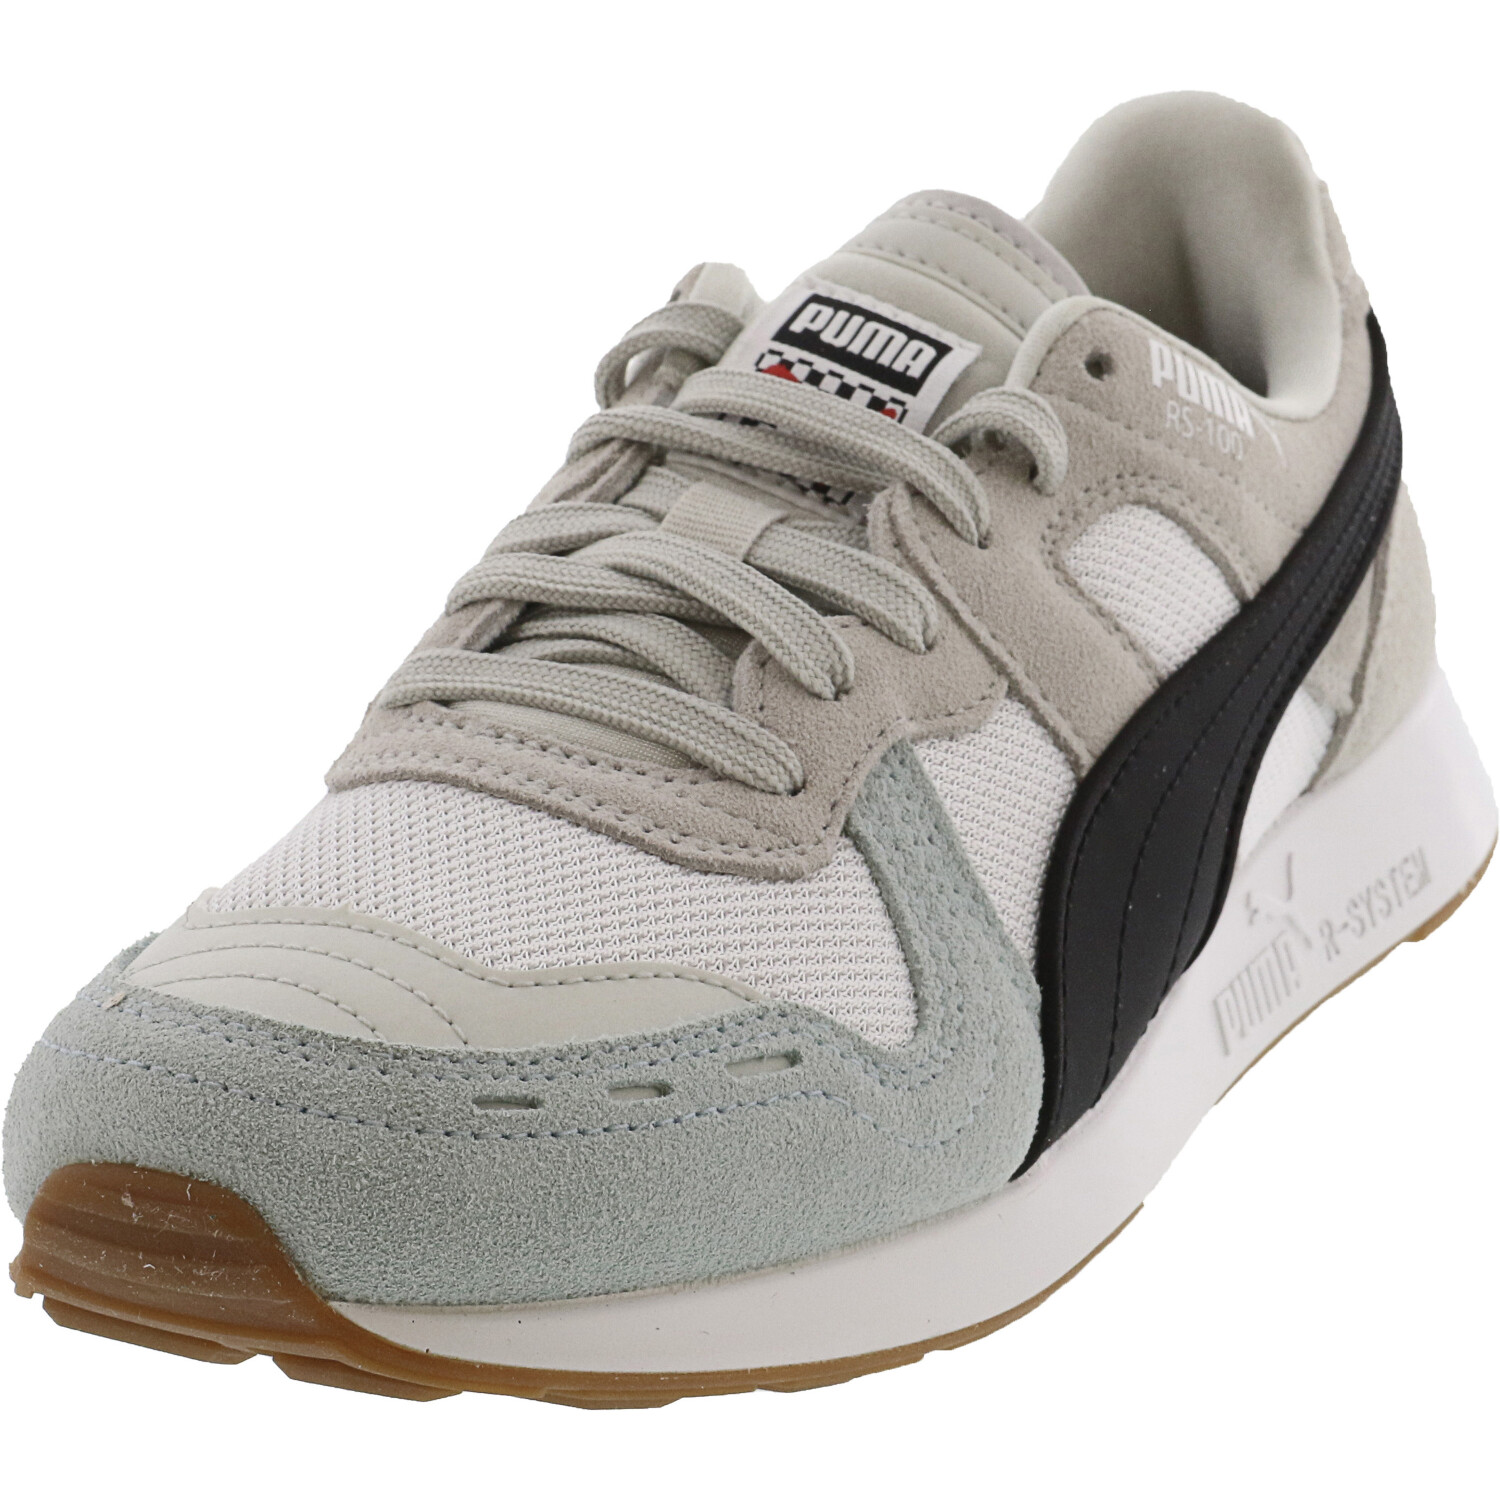 Puma Men's Rs-100 Racing Flag Glacier Gray / White Low Top Sneaker - 5.5M